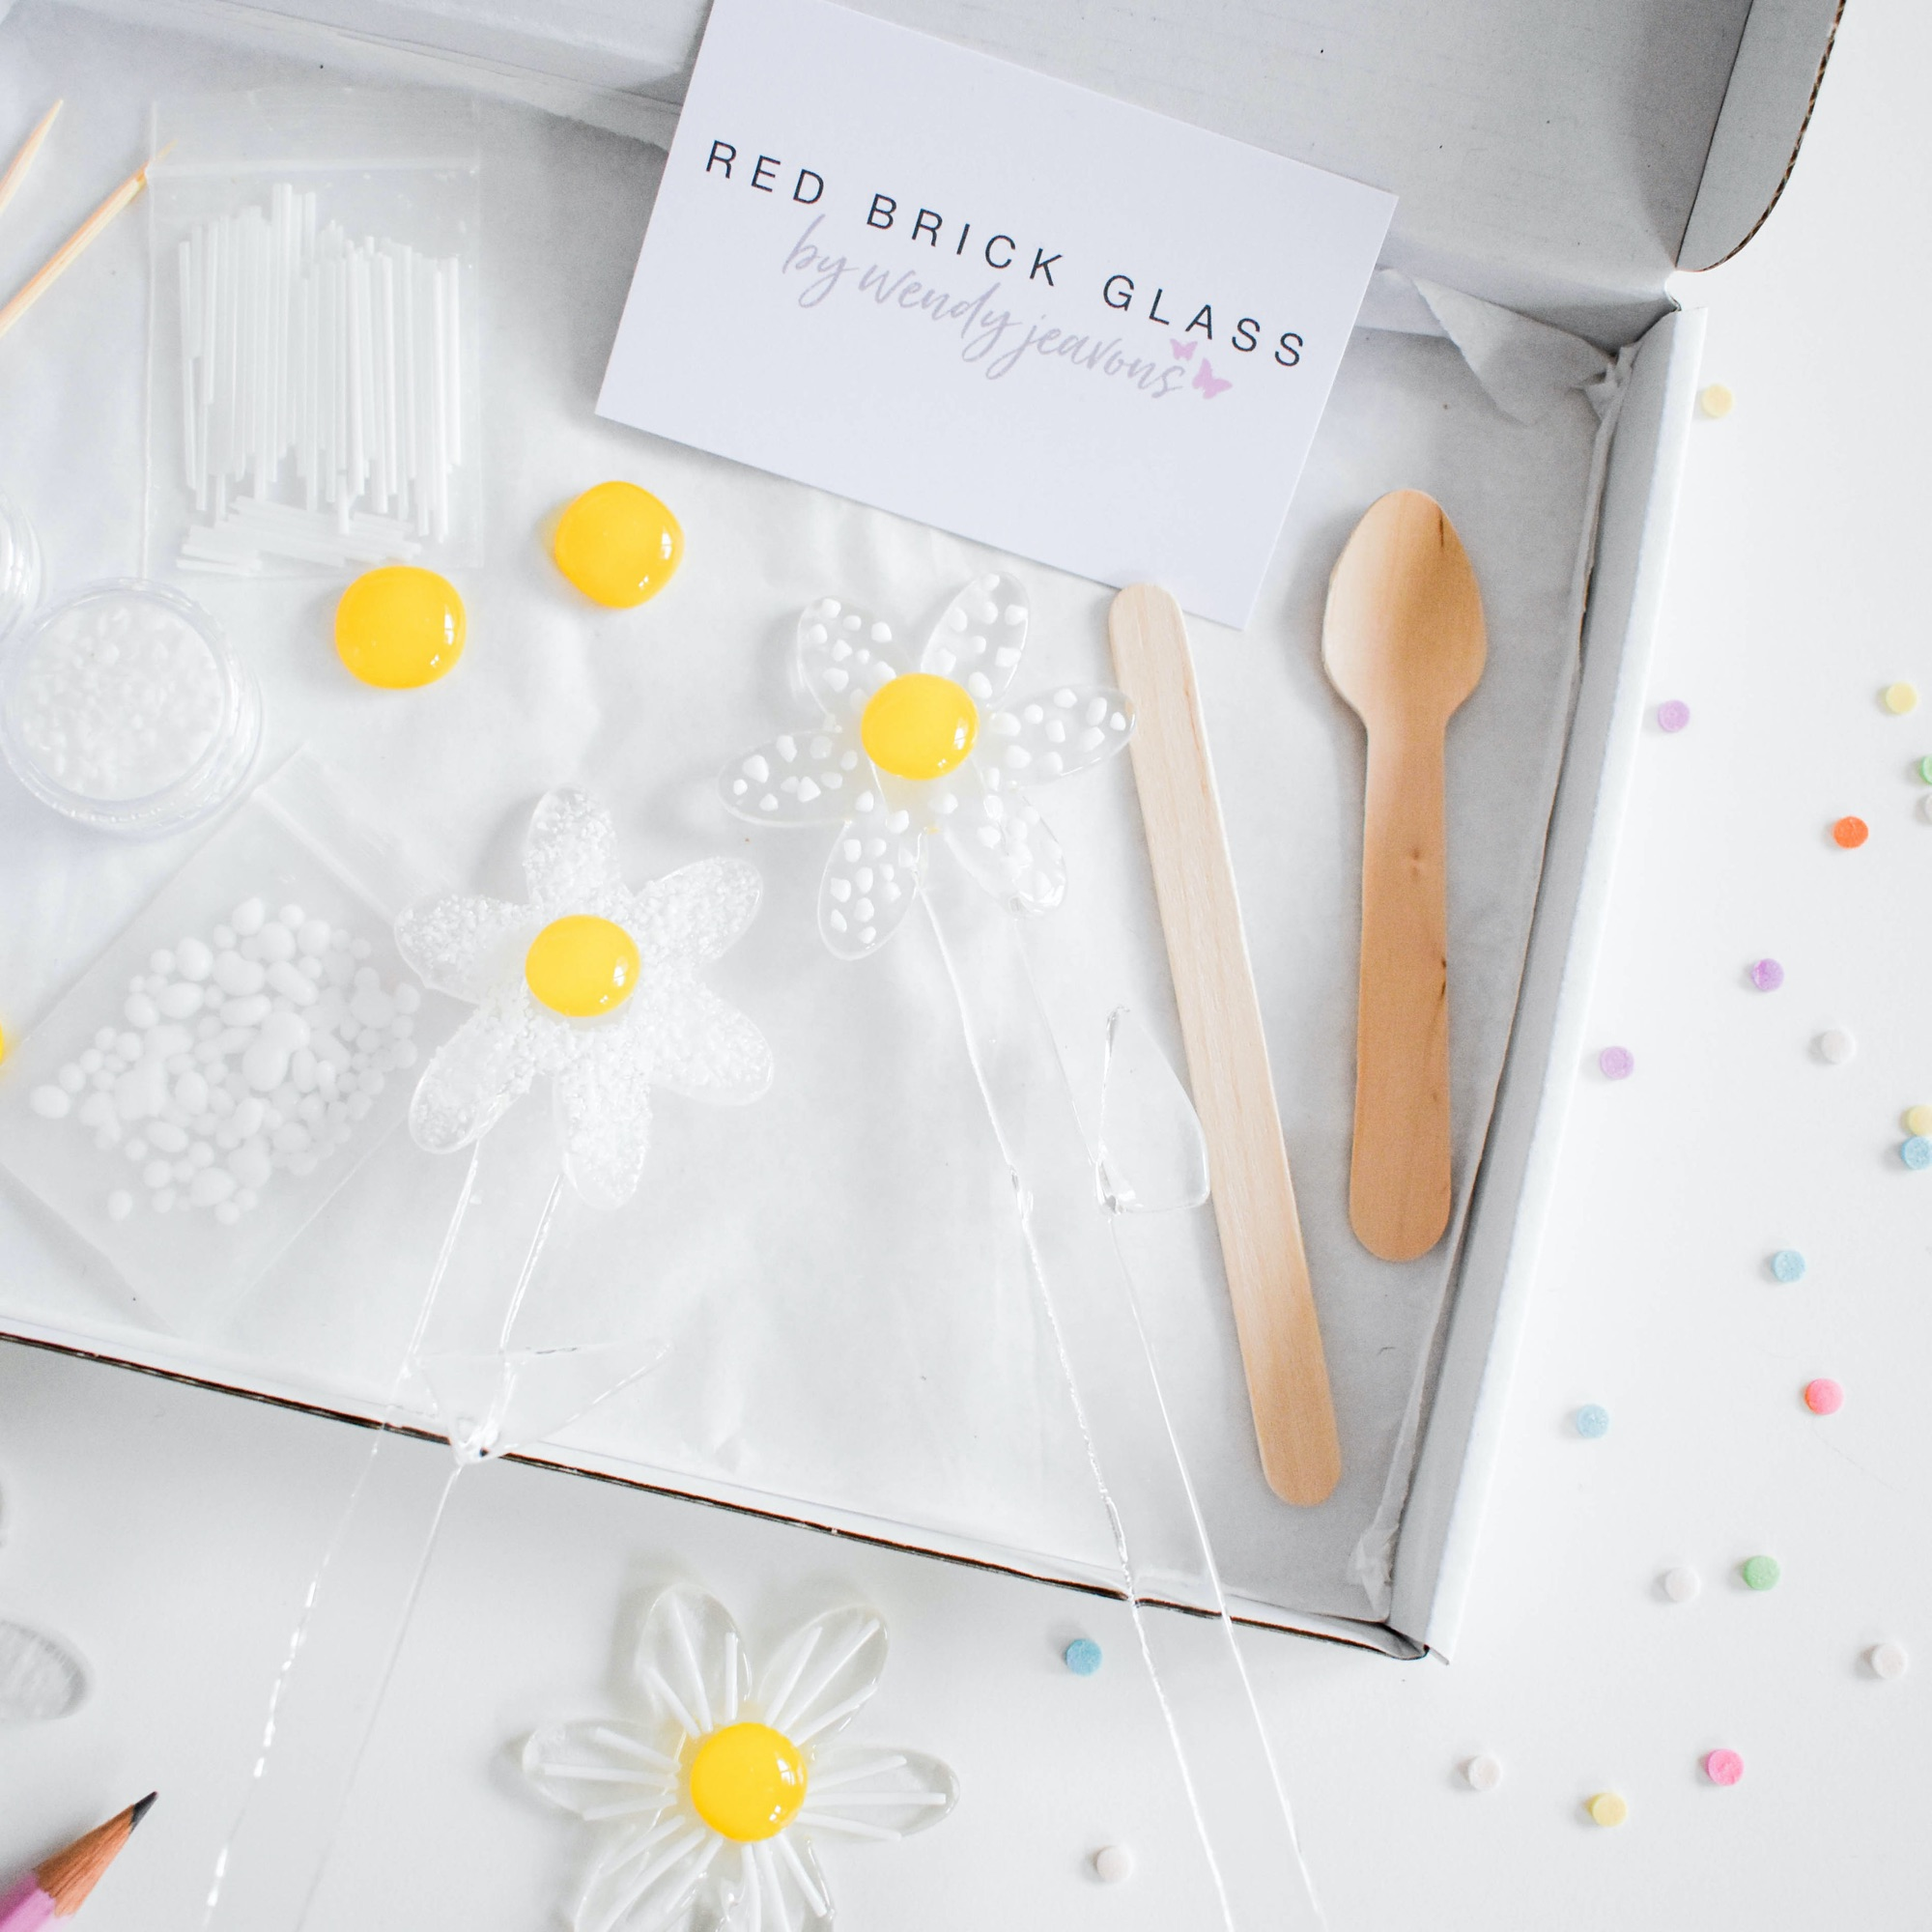 Make at home fused glass daisy kit